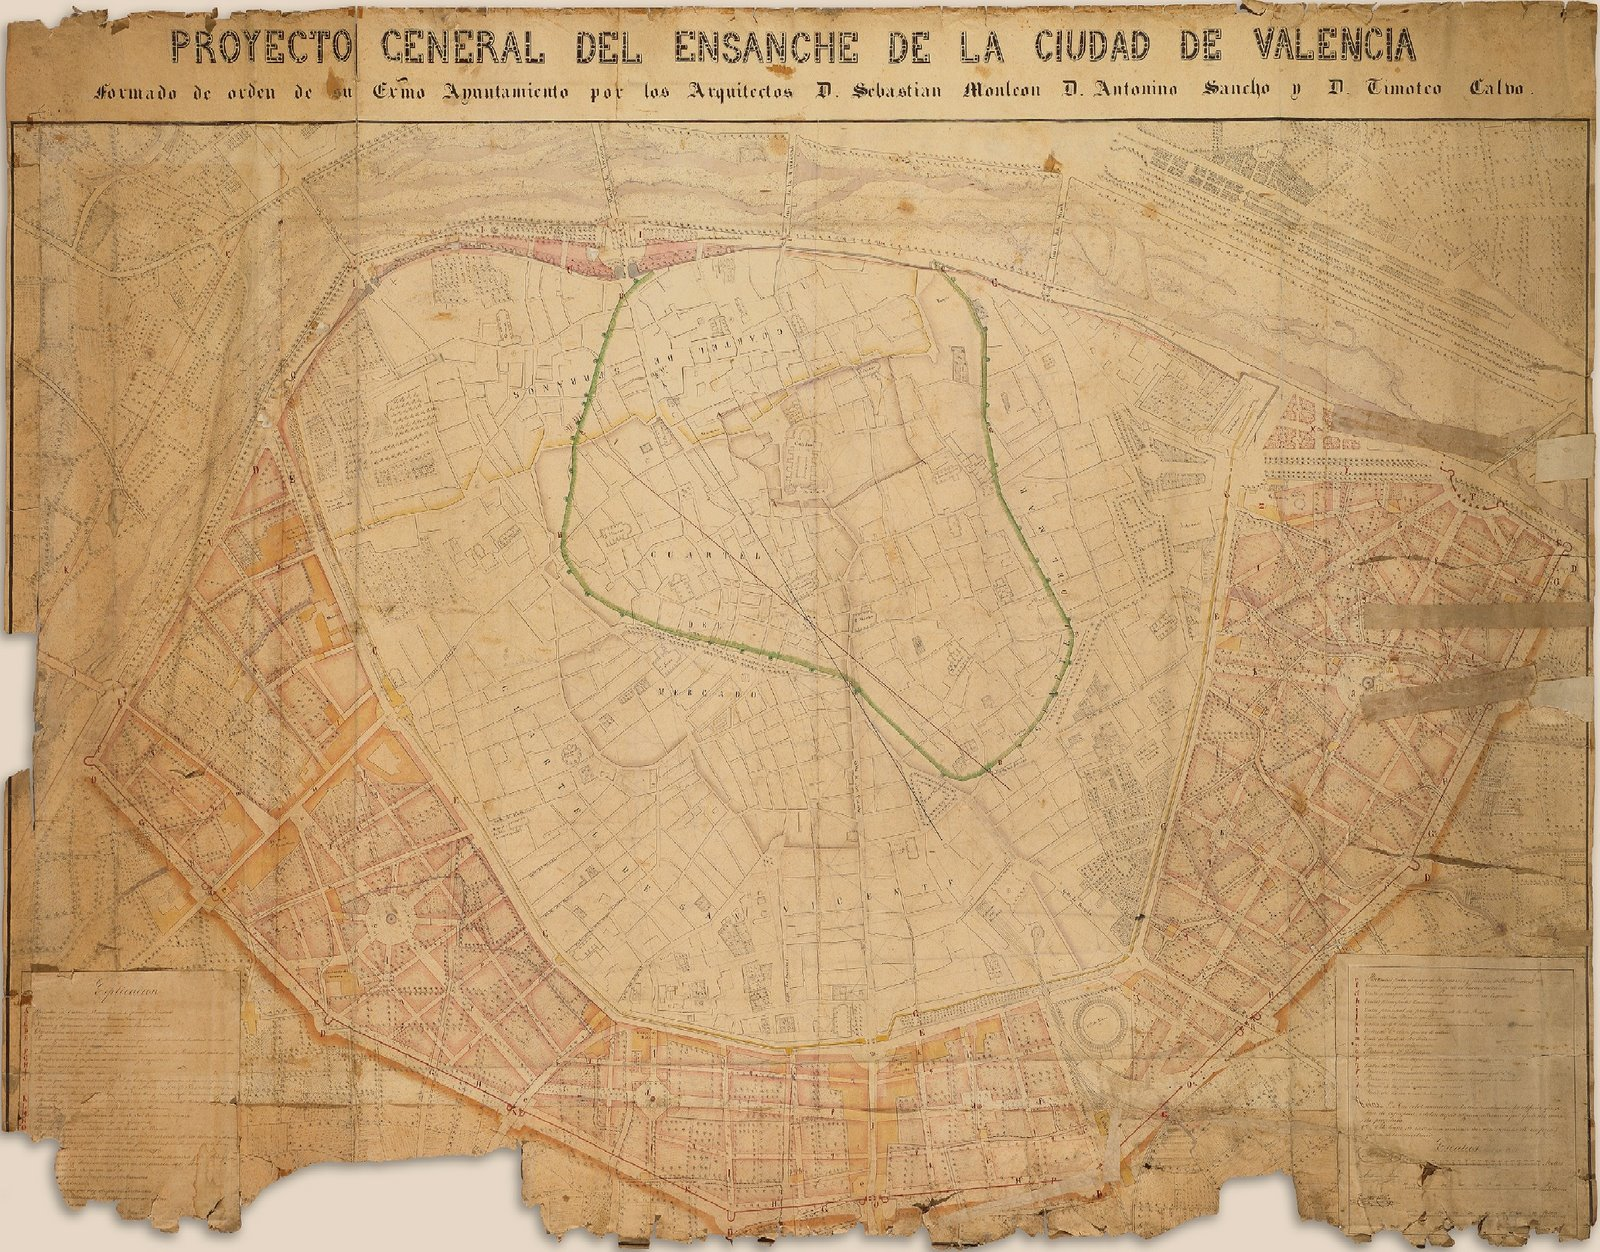 Widening / expansion project of Valencia 1858